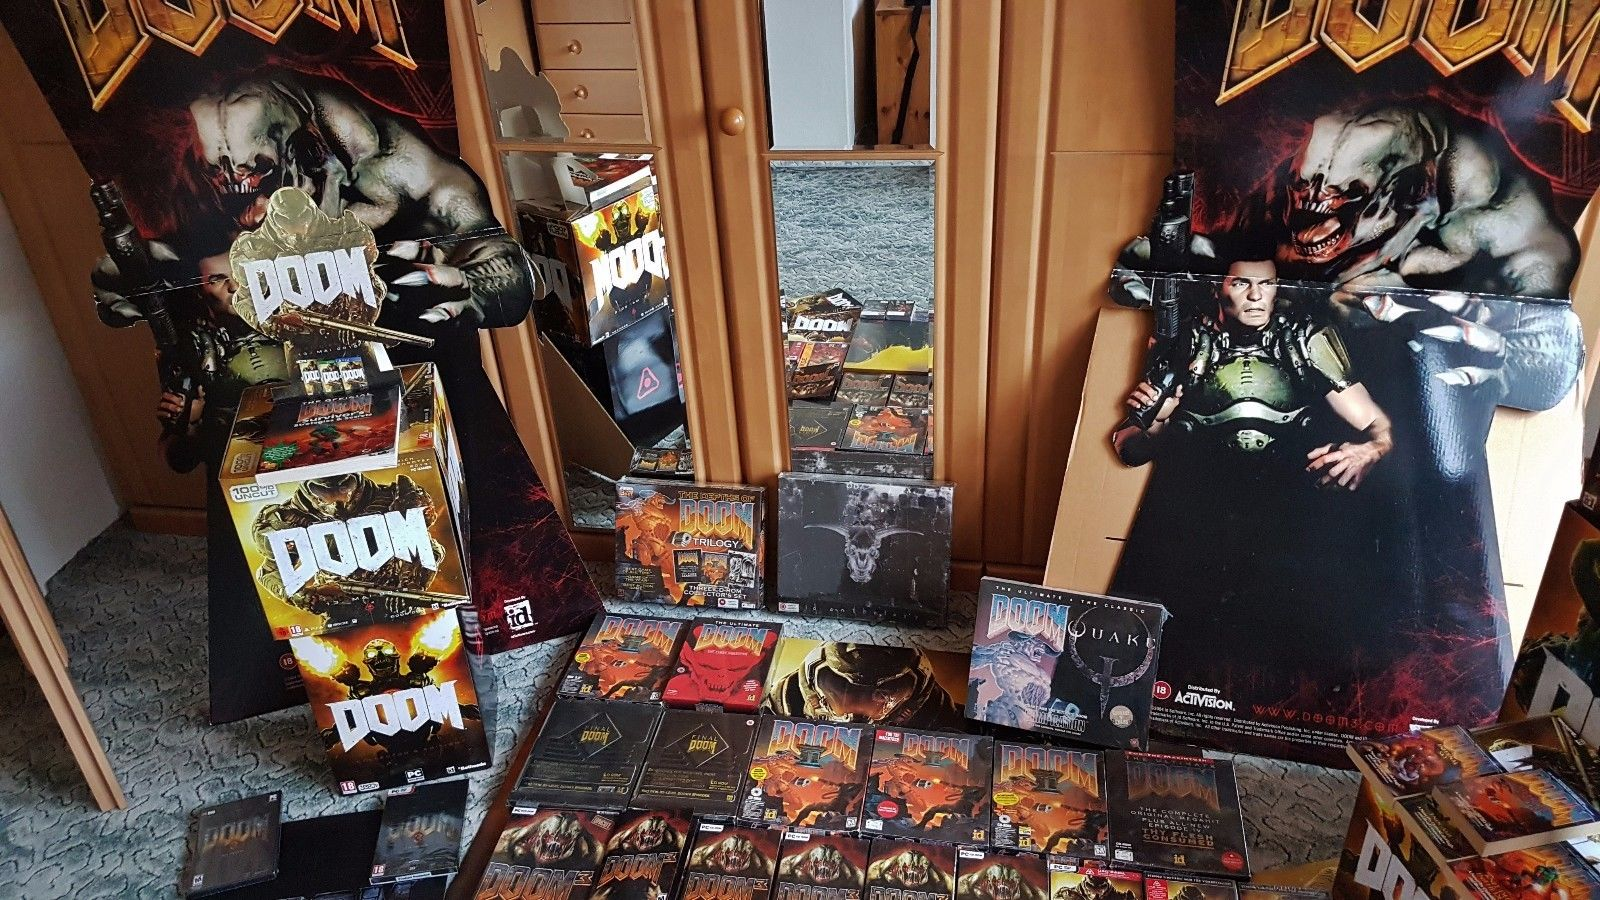 Biggest DOOM Collection in the World Video Game PC Gaming id Software Carmack Romero Hall Petersen McGee Green 2